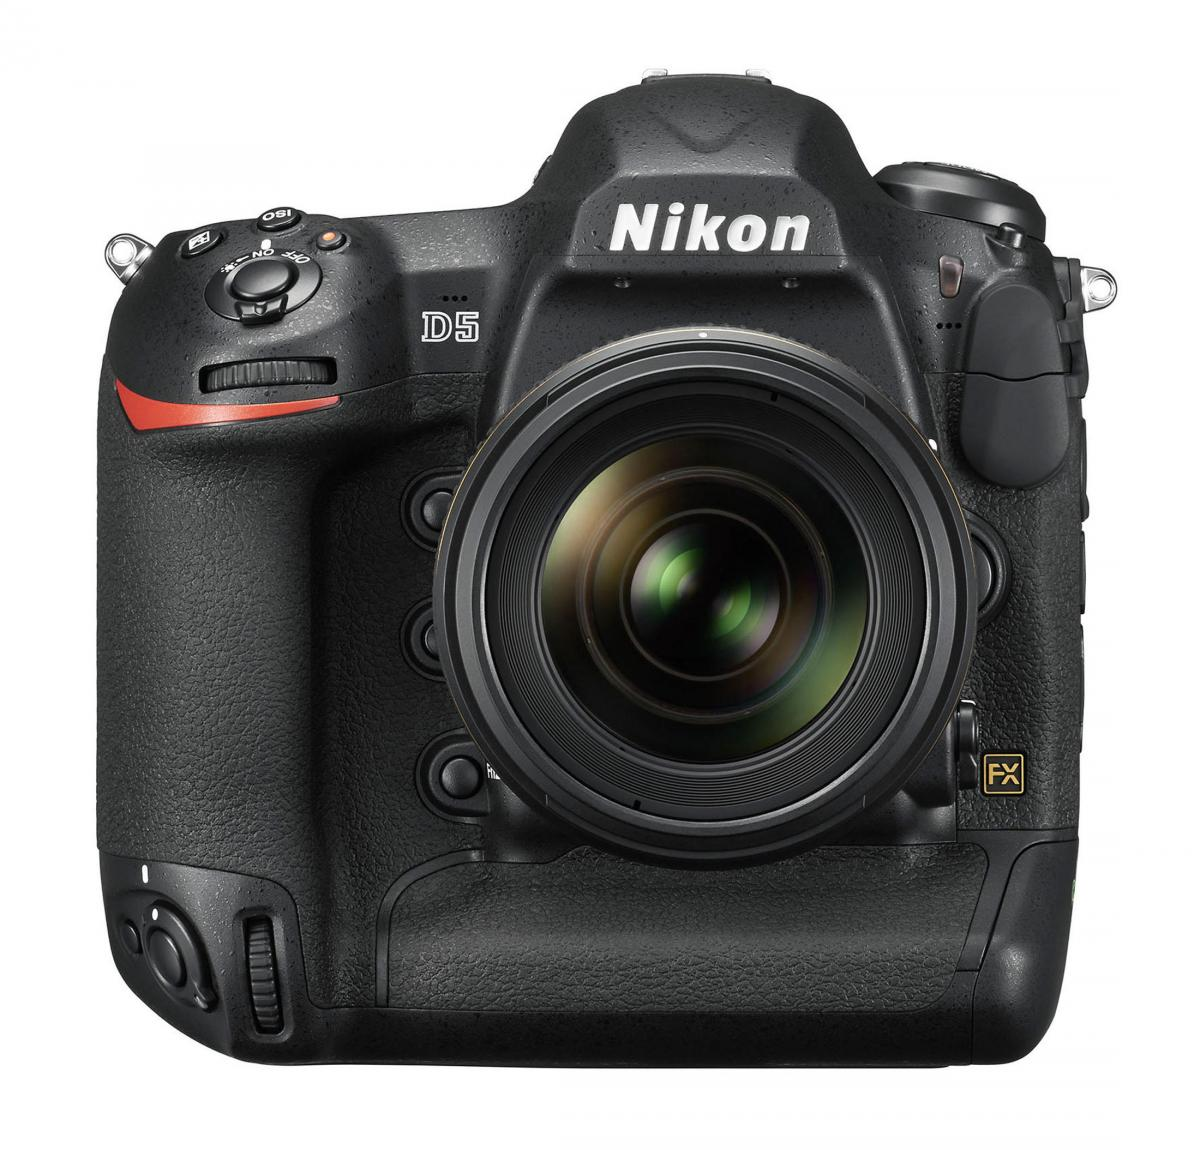 Flat 31% Off on Nikon D750 FX-format Digital SLR Camera w/ 24-120mm f/4G ED VR Auto Focus-S NIKKOR Lens